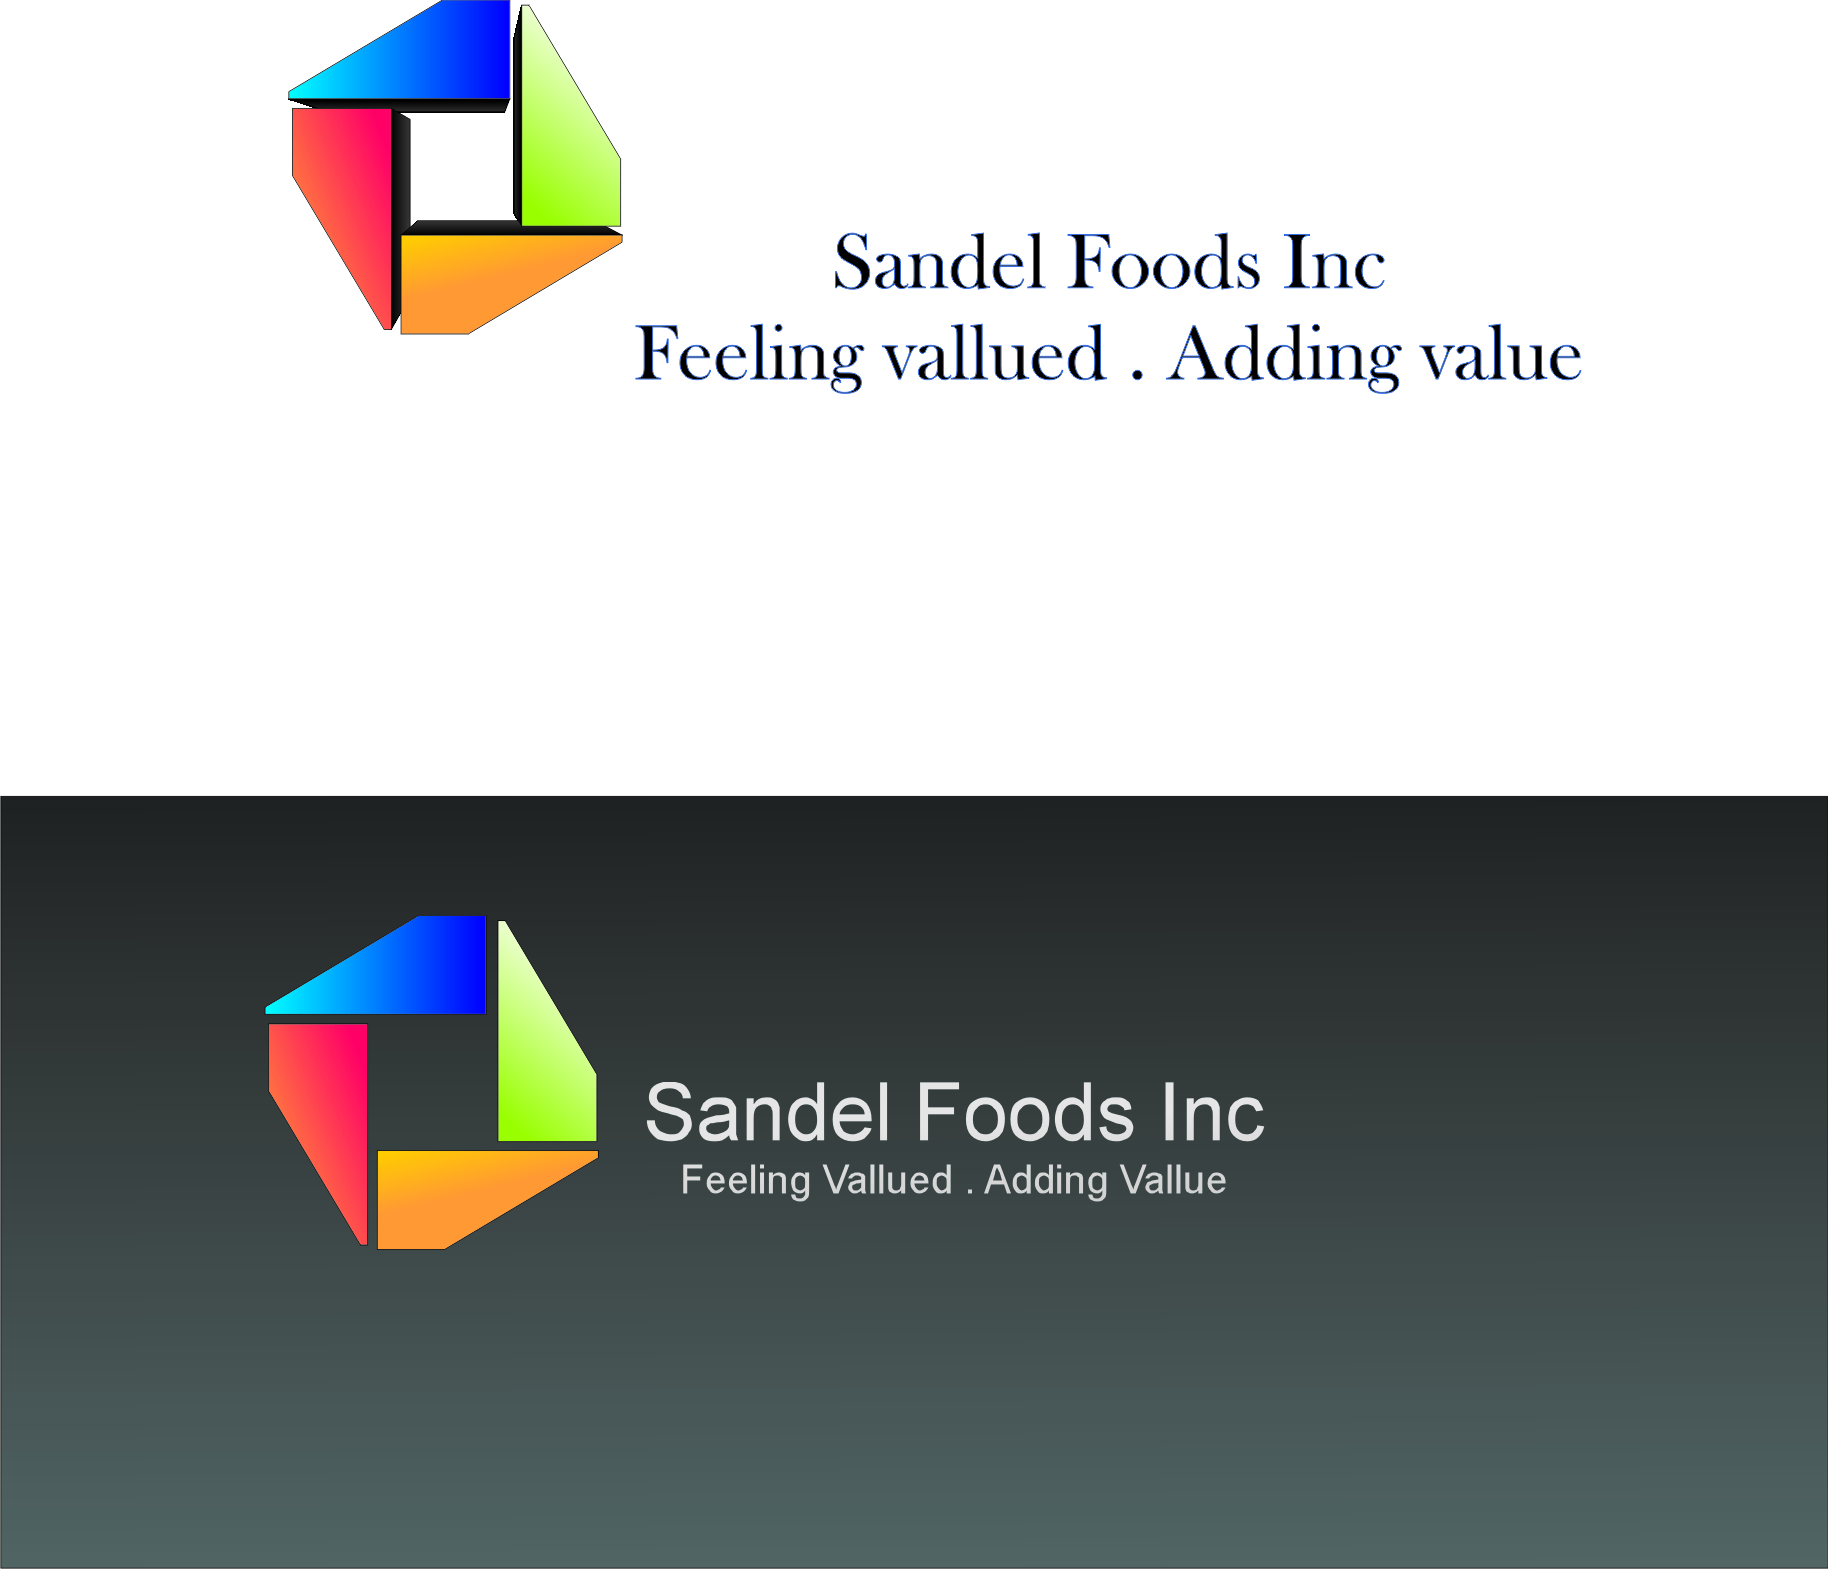 Logo Design by dimitrovart - Entry No. 18 in the Logo Design Contest Fun Logo Design for Sandel Foods Inc.